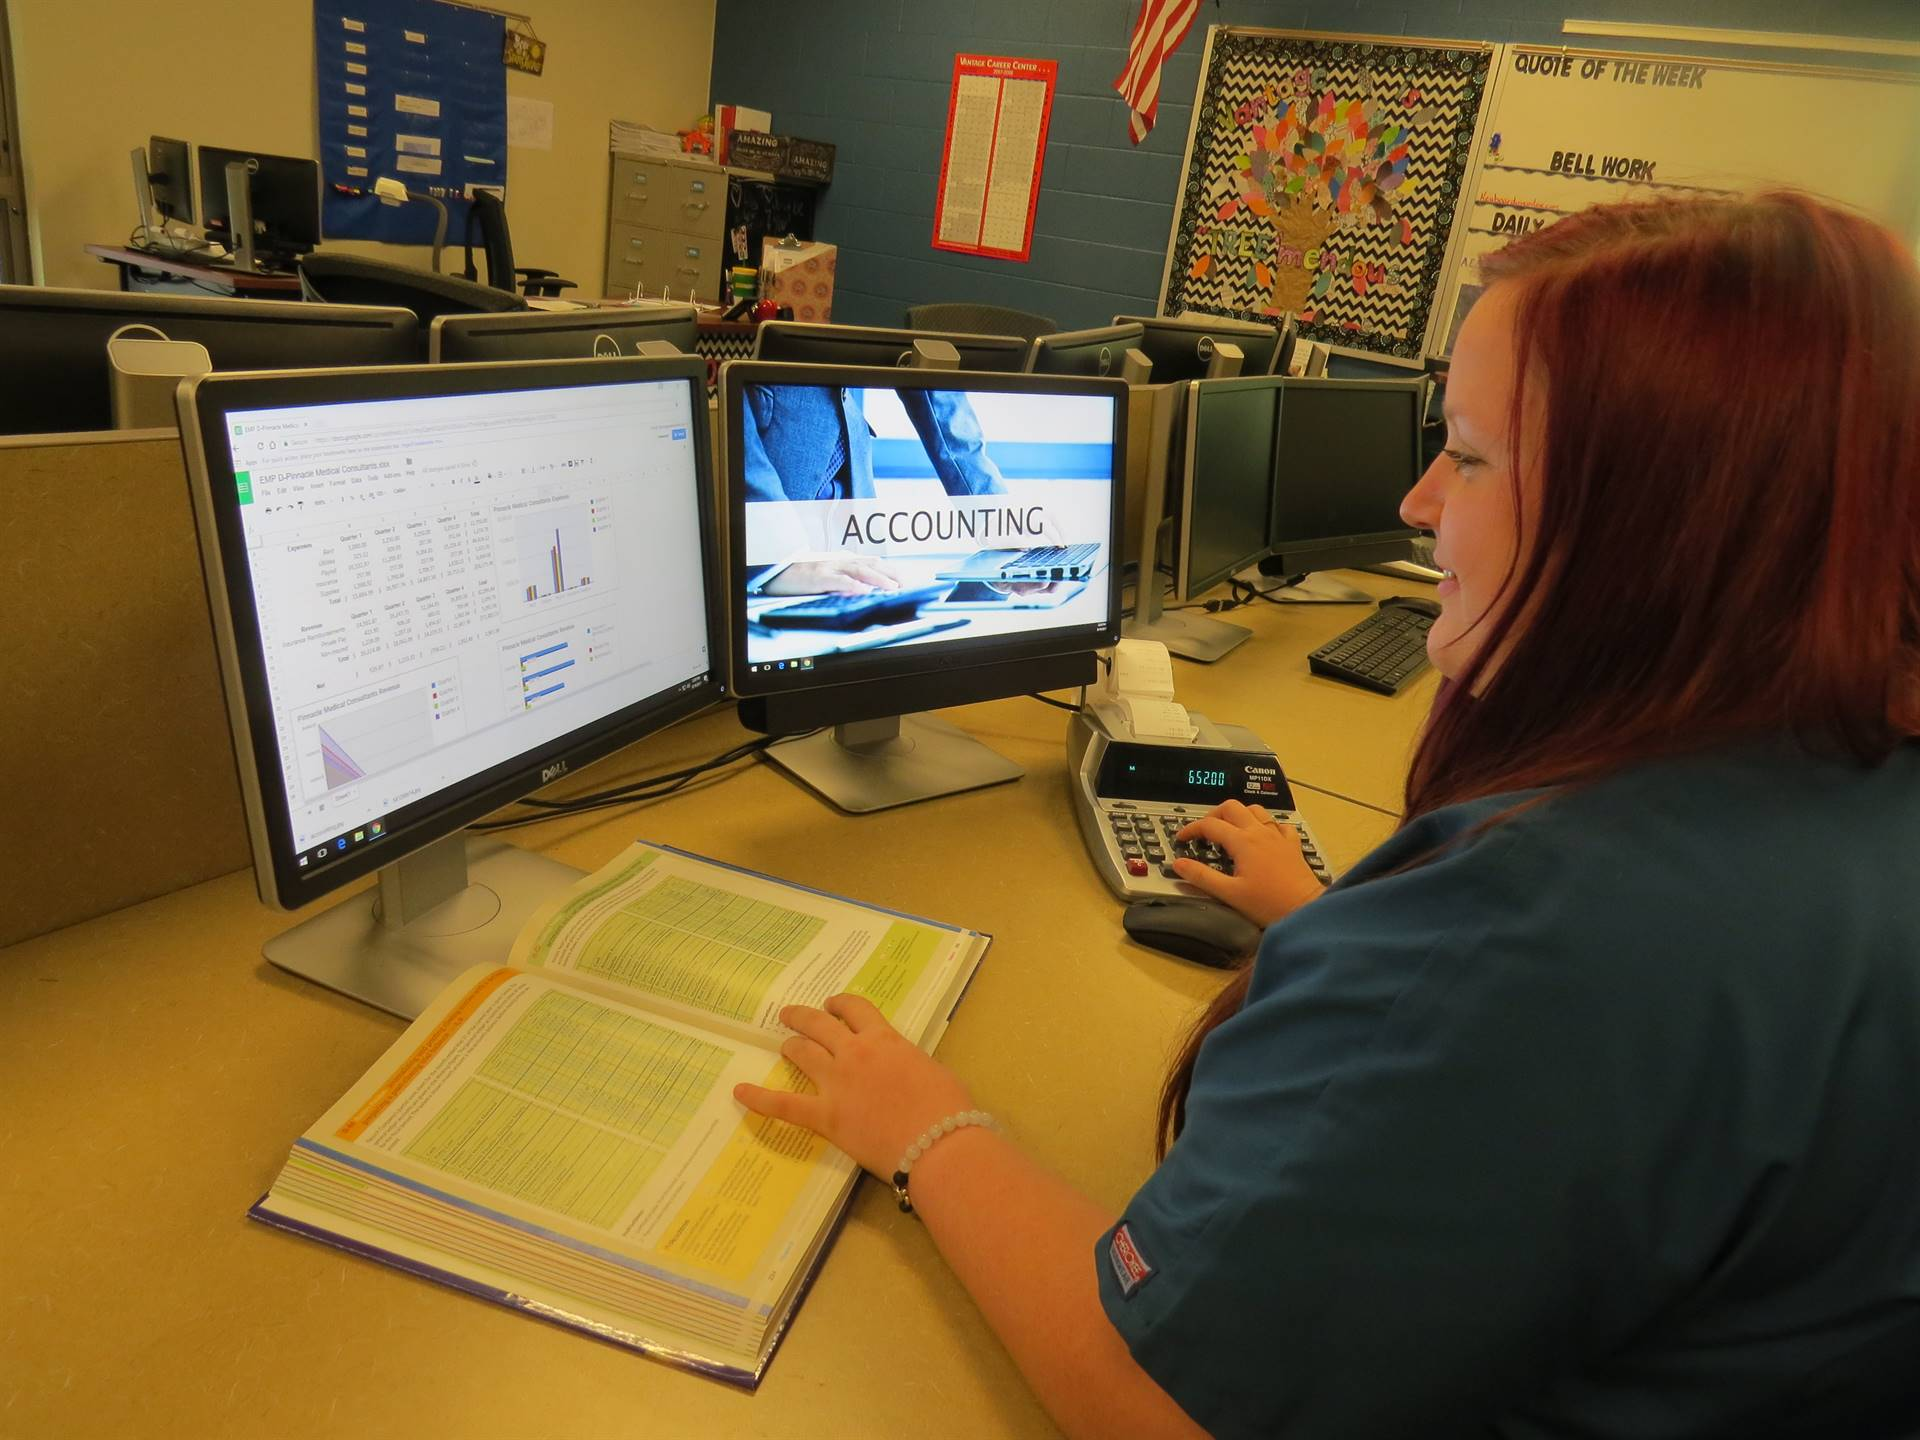 One female student working on accounting on the computer